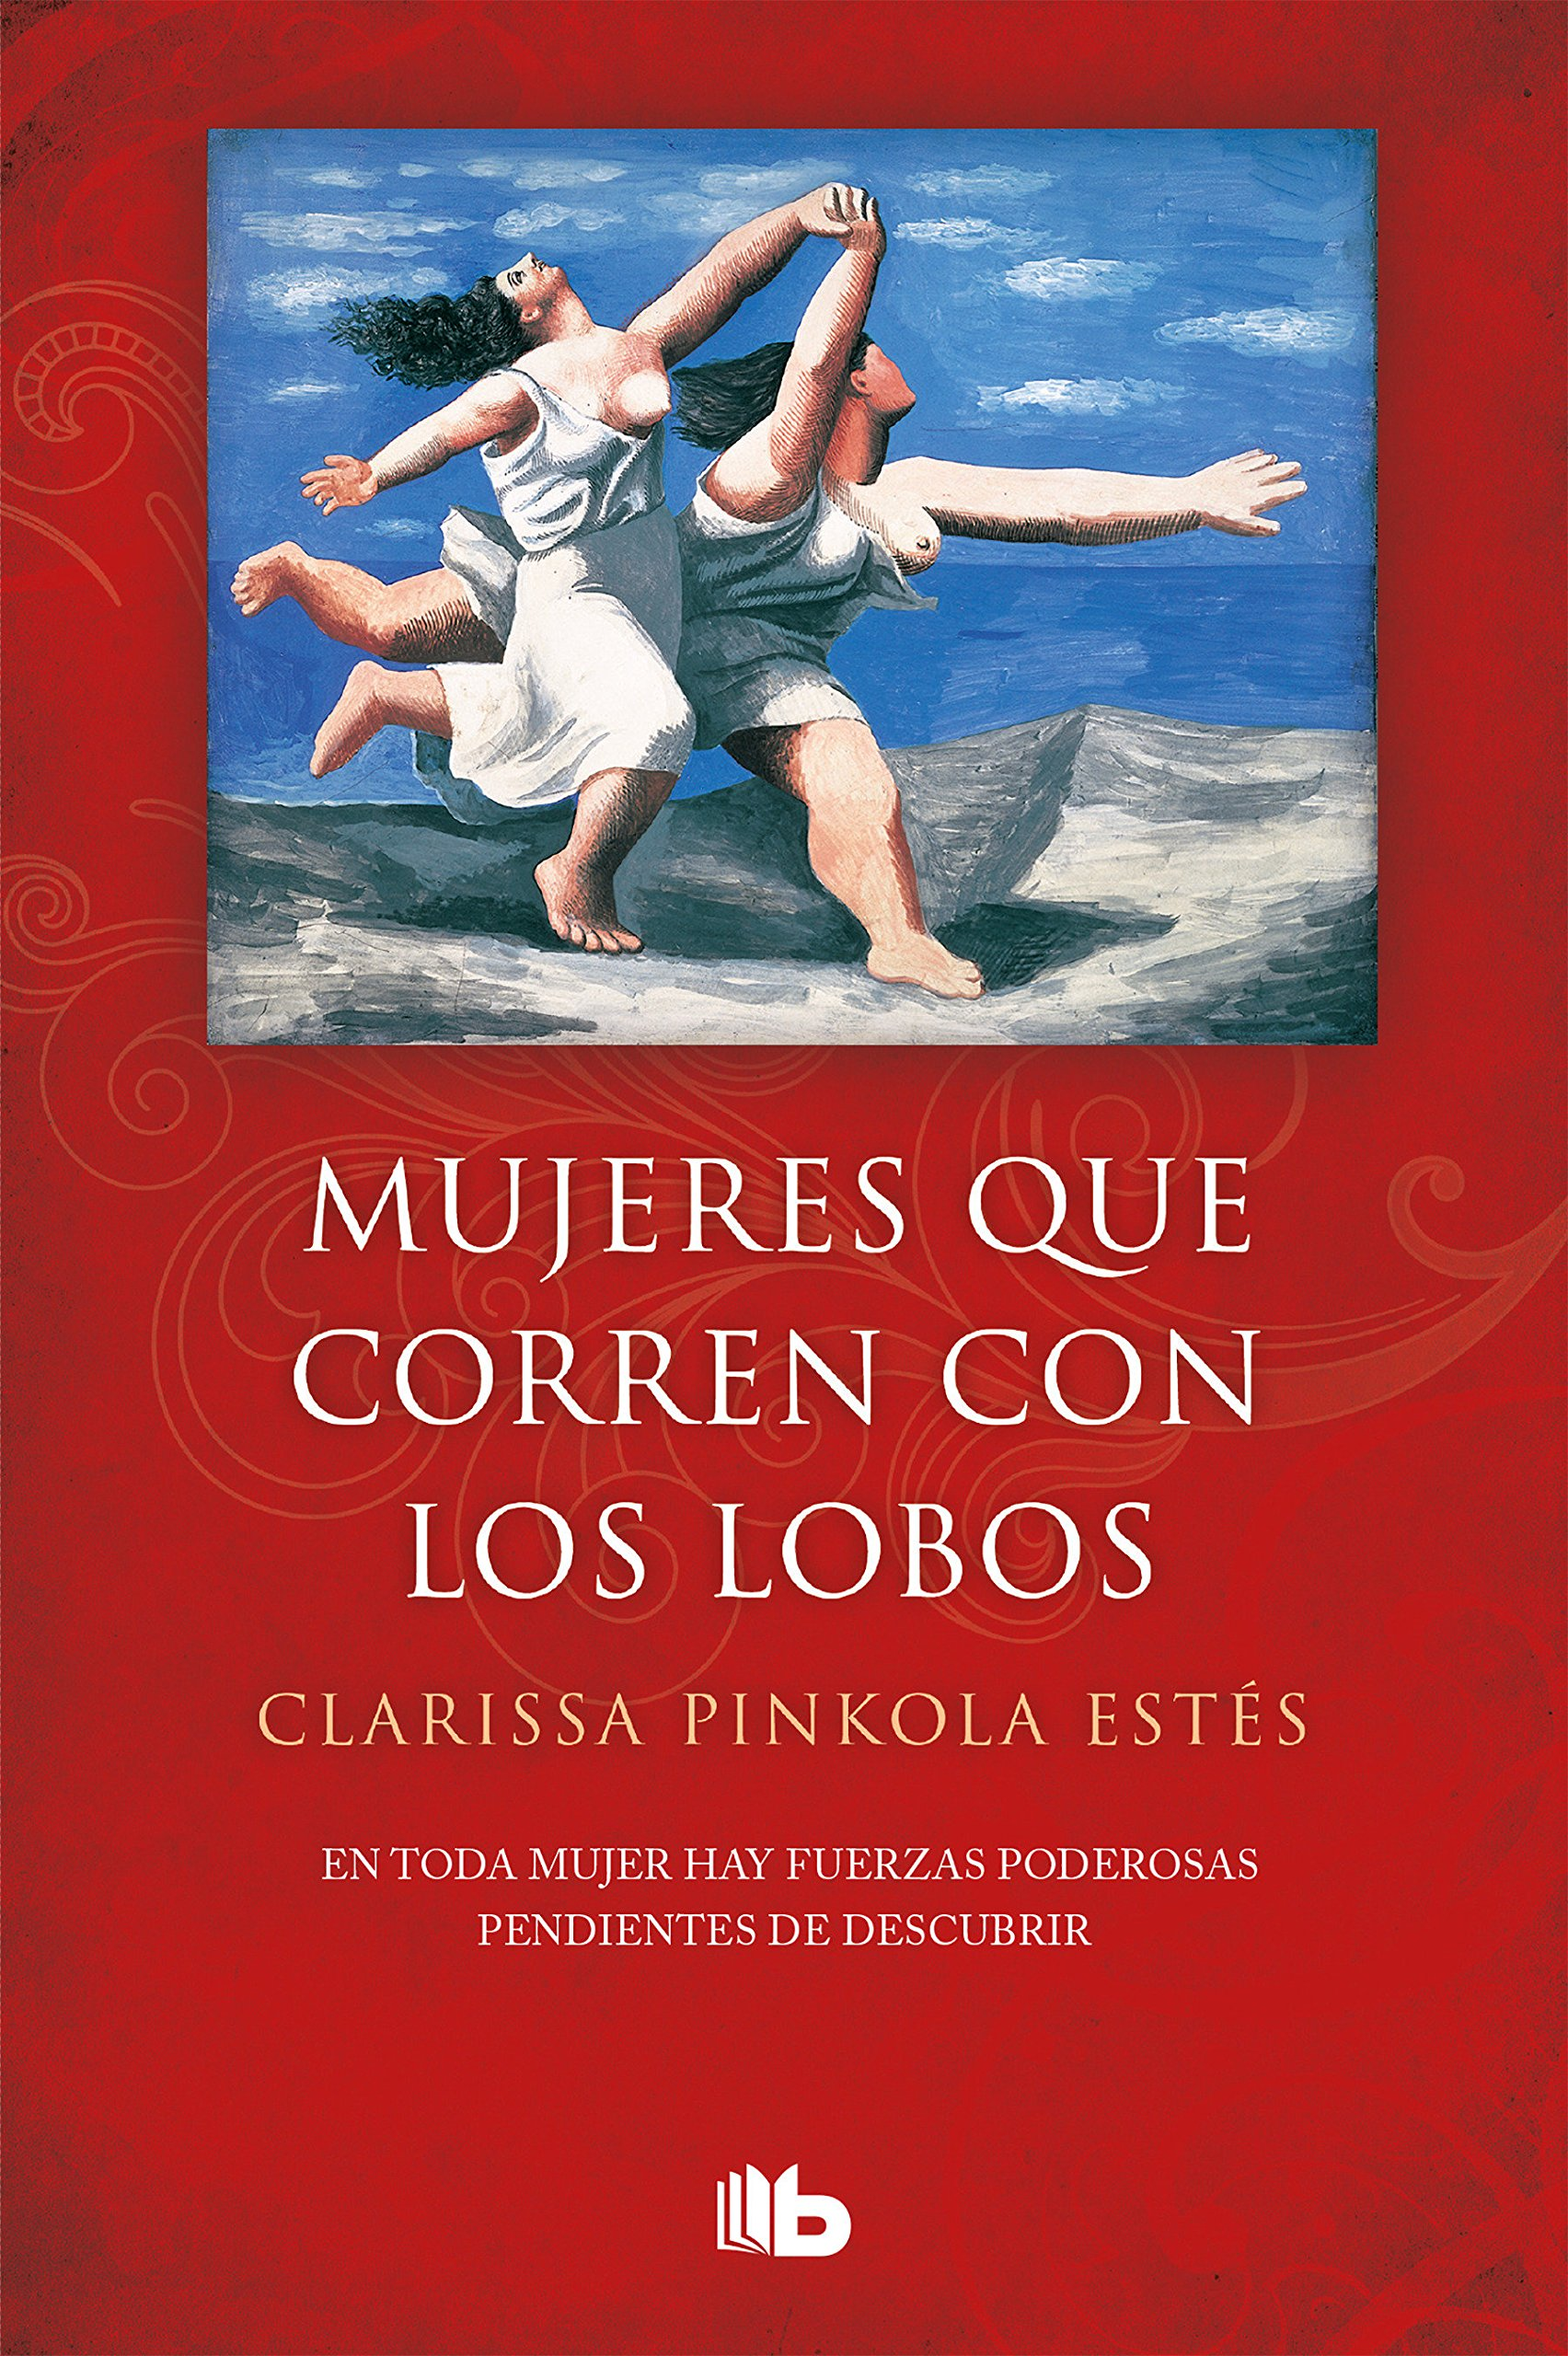 Mujeres que corren los con lobos / Women Who Run with the Wolves